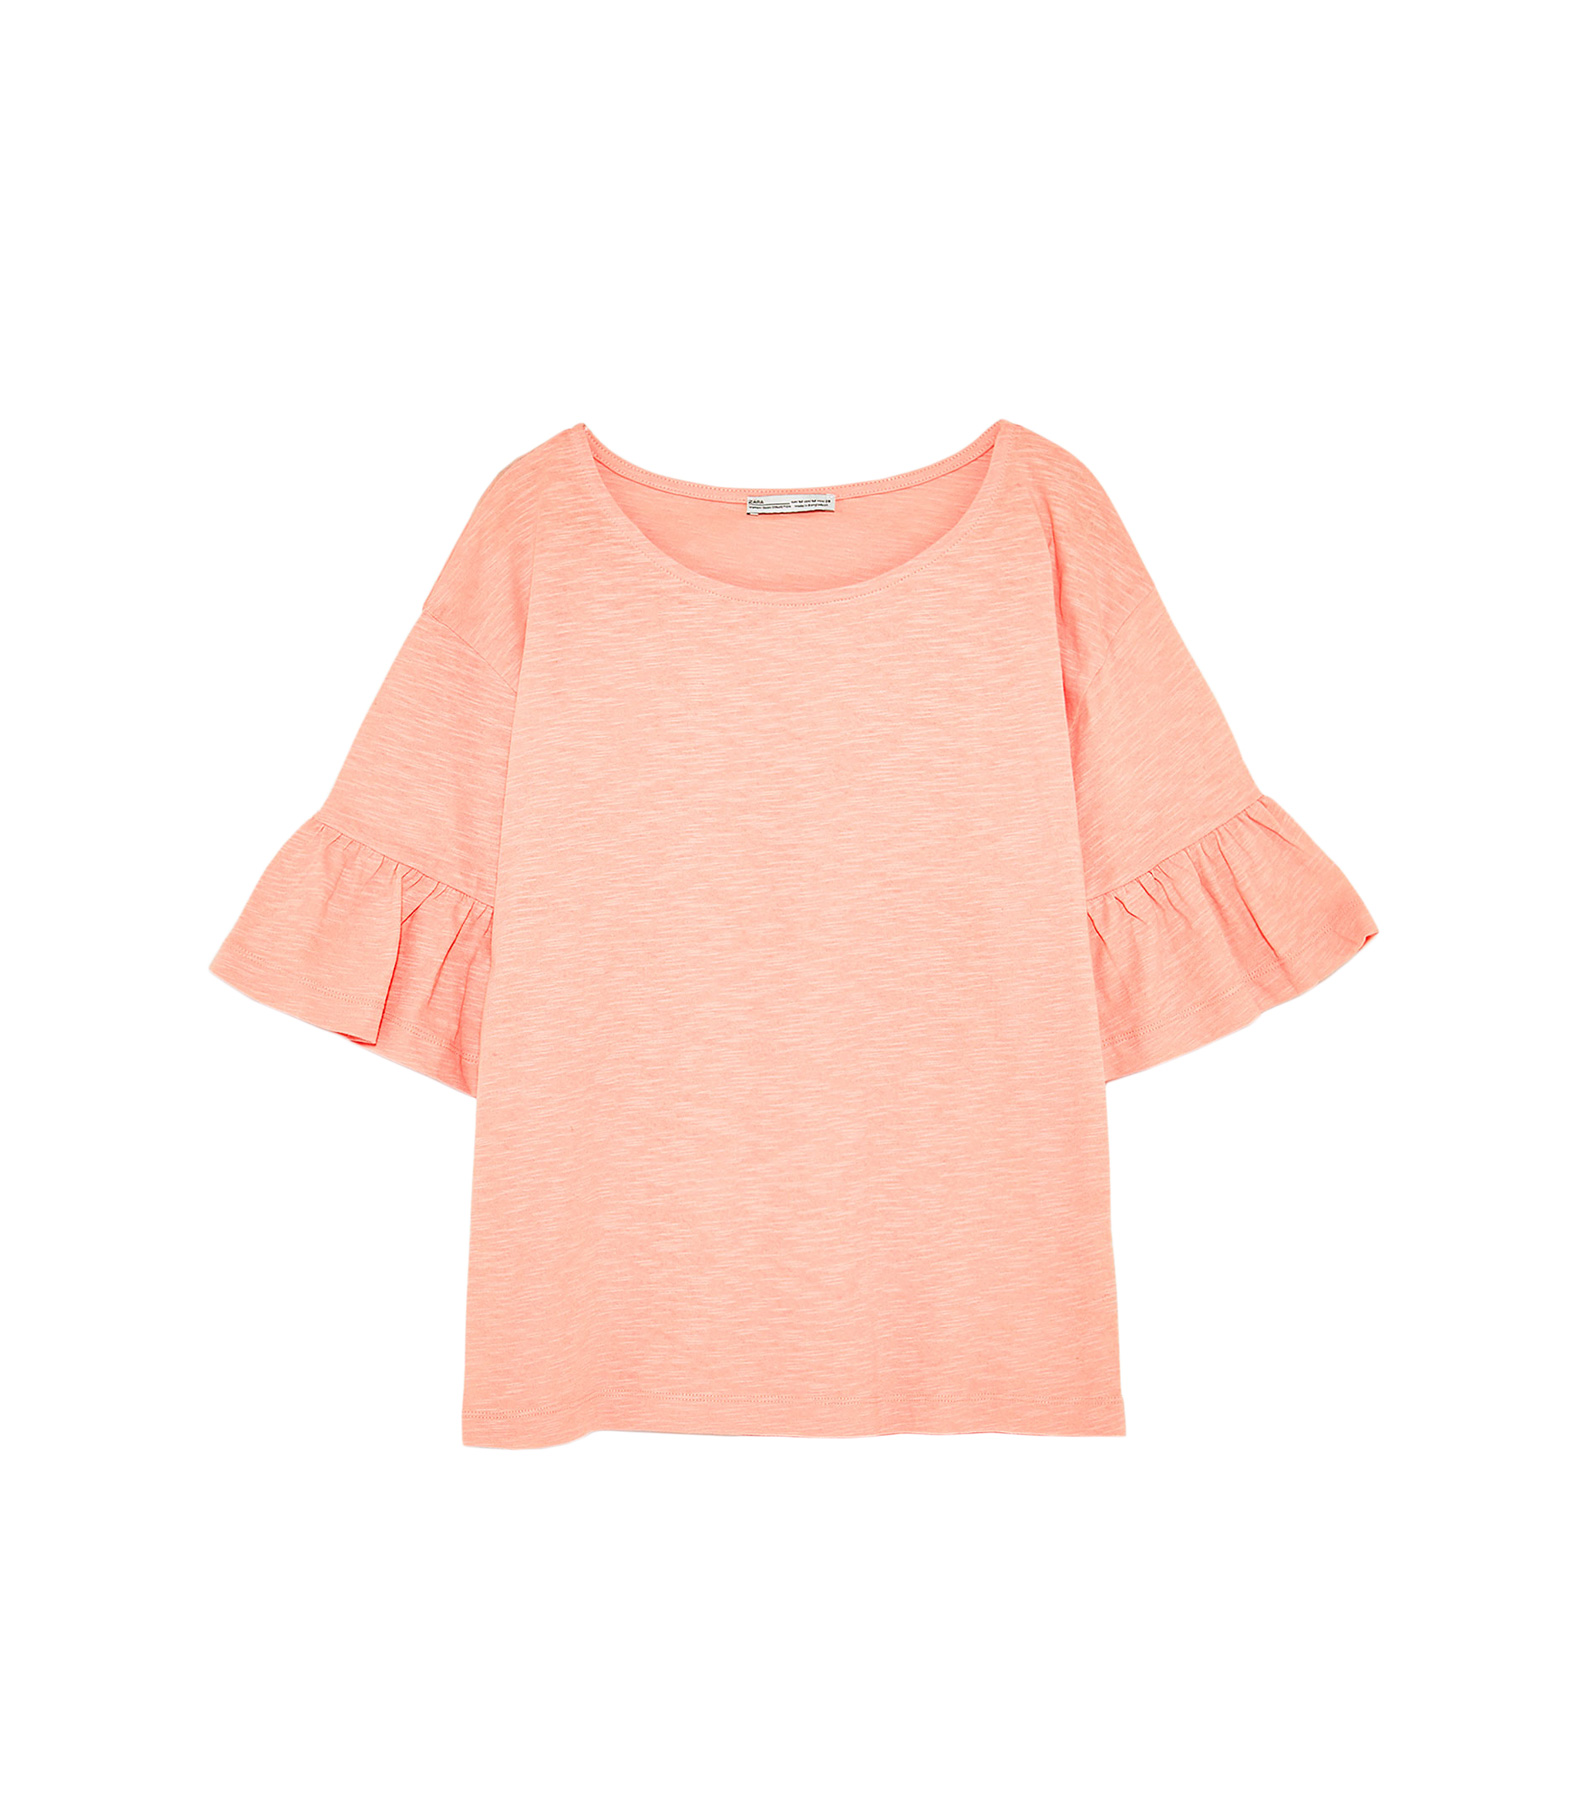 Zara T-shirt With Frilled Sleeves